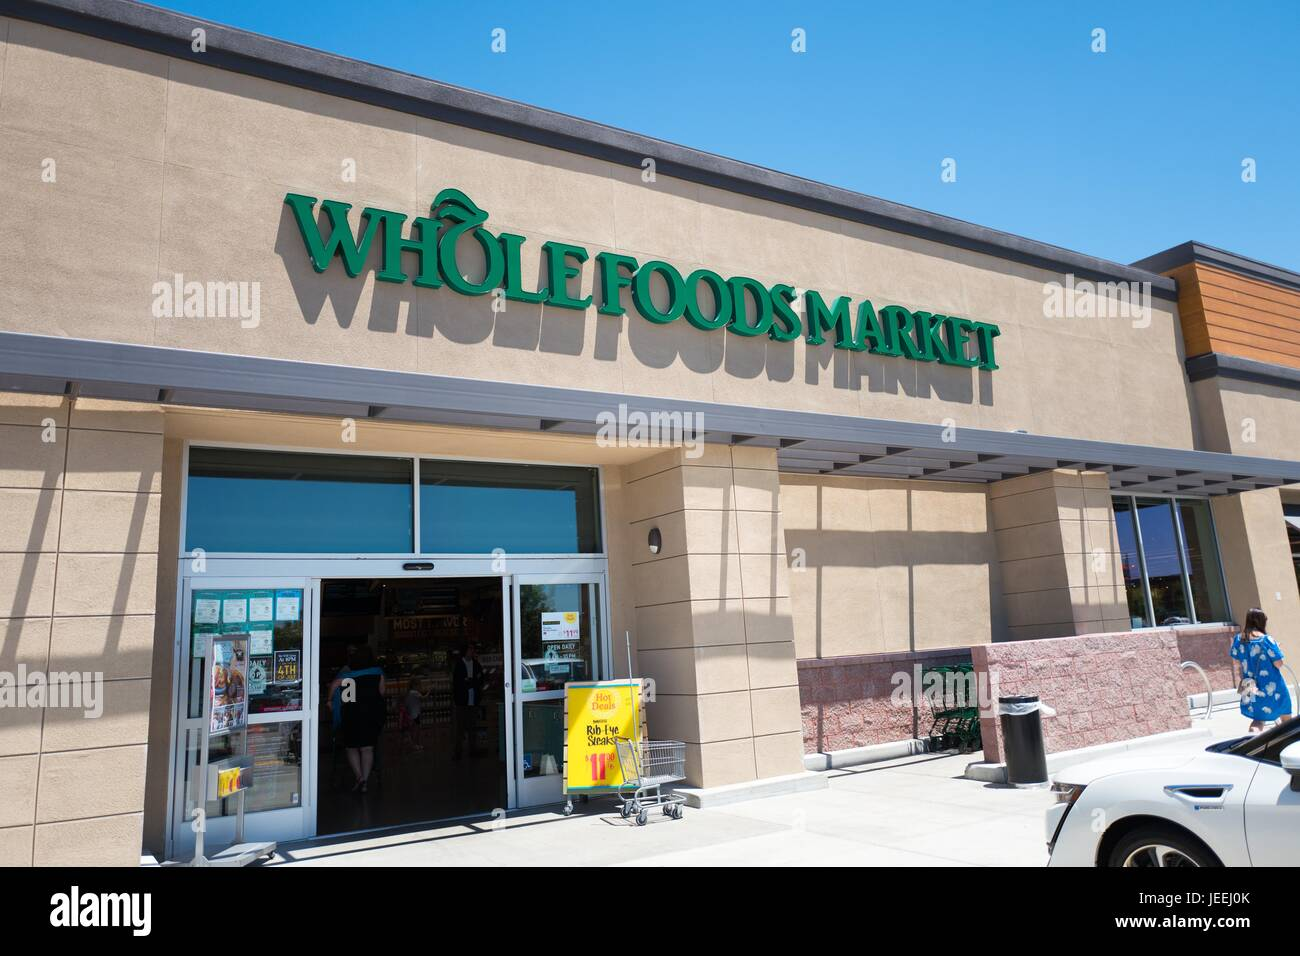 Logo and signage at the Whole Foods Market grocery store in Dublin, California, June 16, 2017. Stock Photo